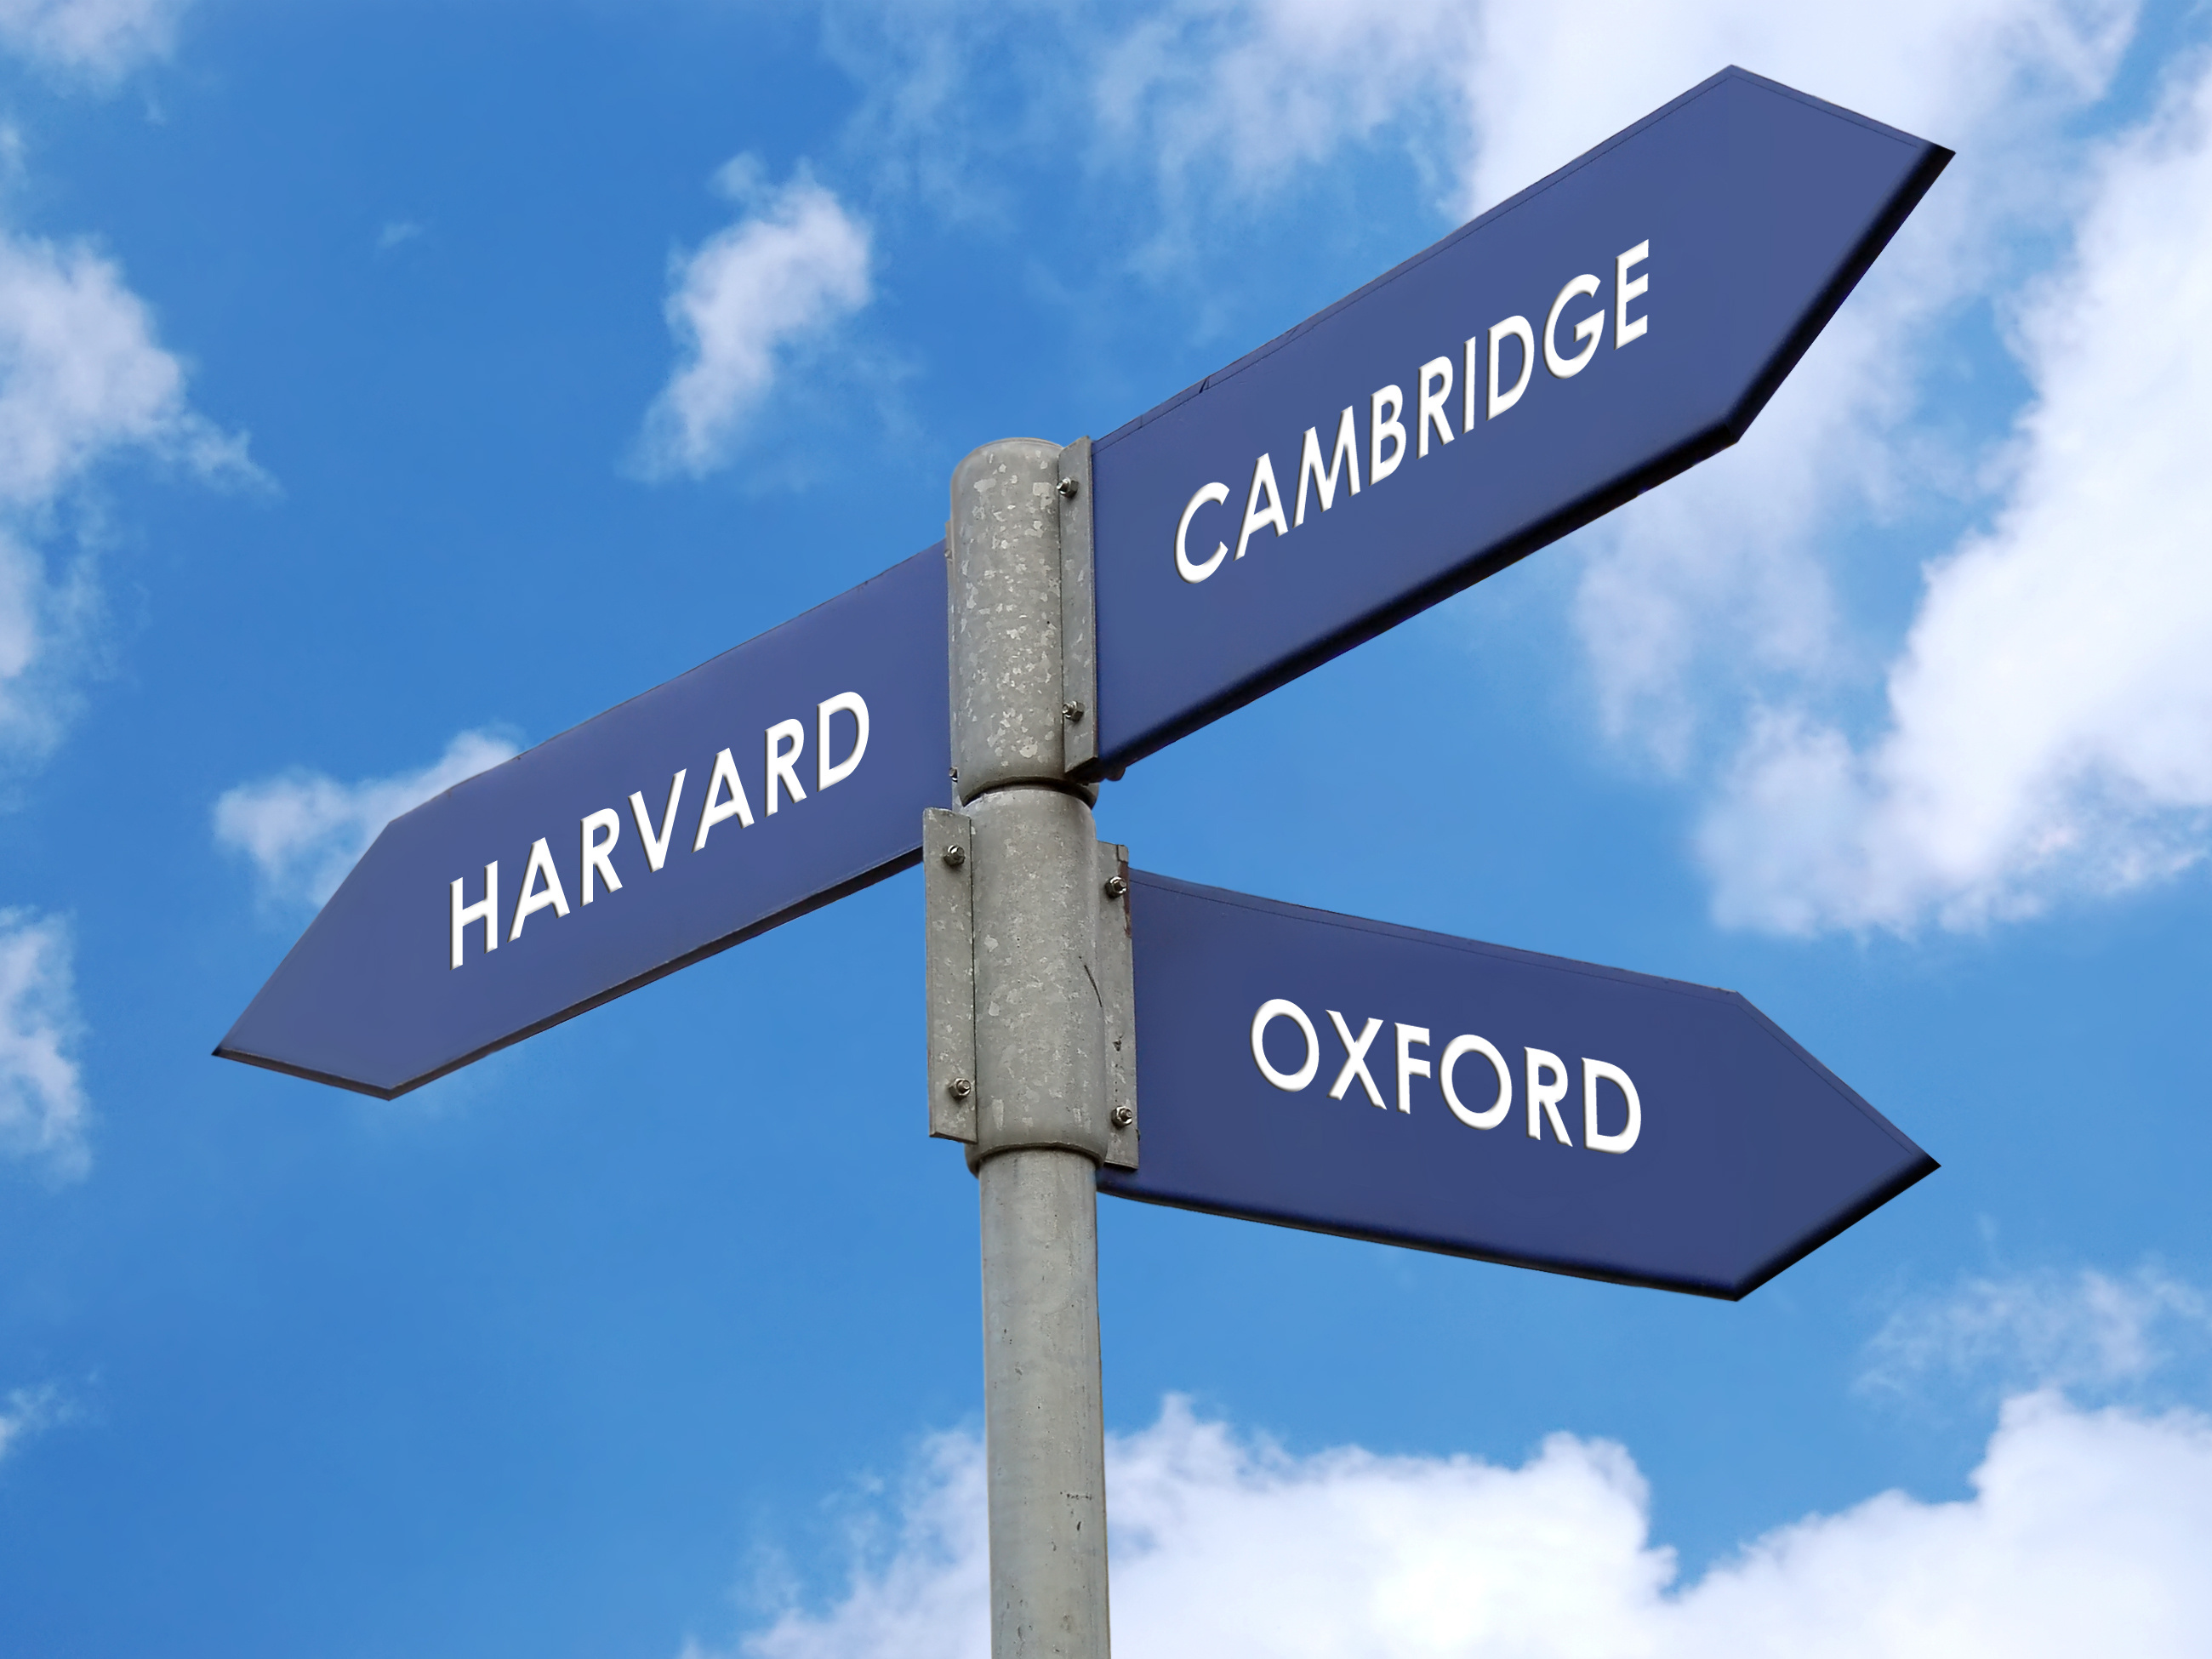 Metal signpost indicating directions of three world famous universities - Harvard / Cambridge / Oxford